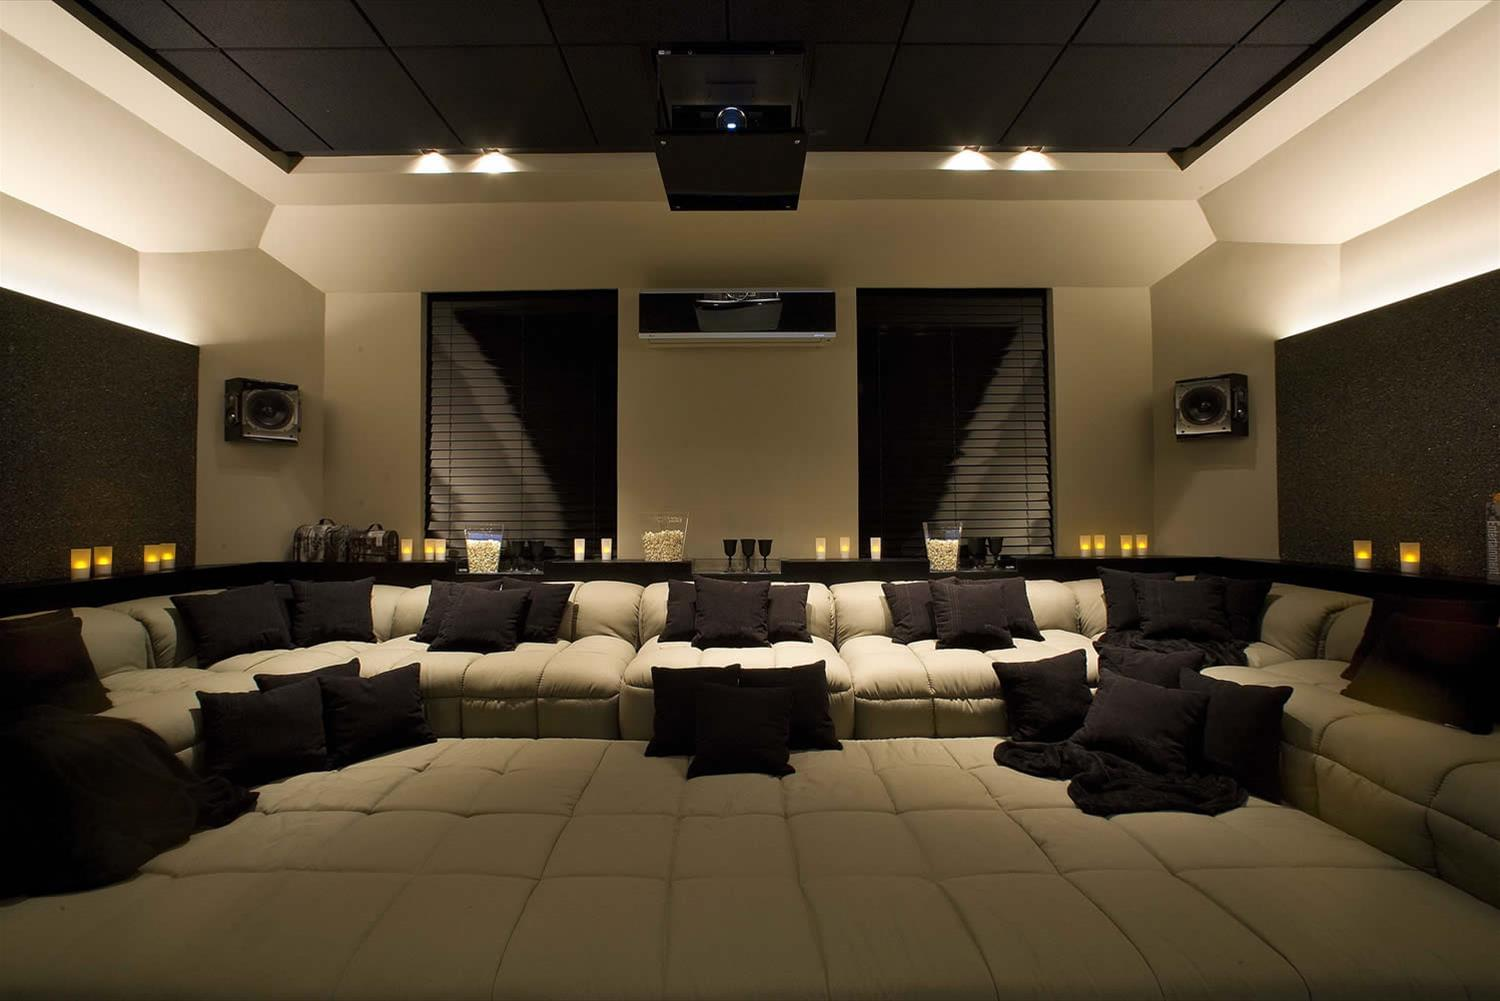 Home theater galeria da arquitetura - Sala home cinema ...